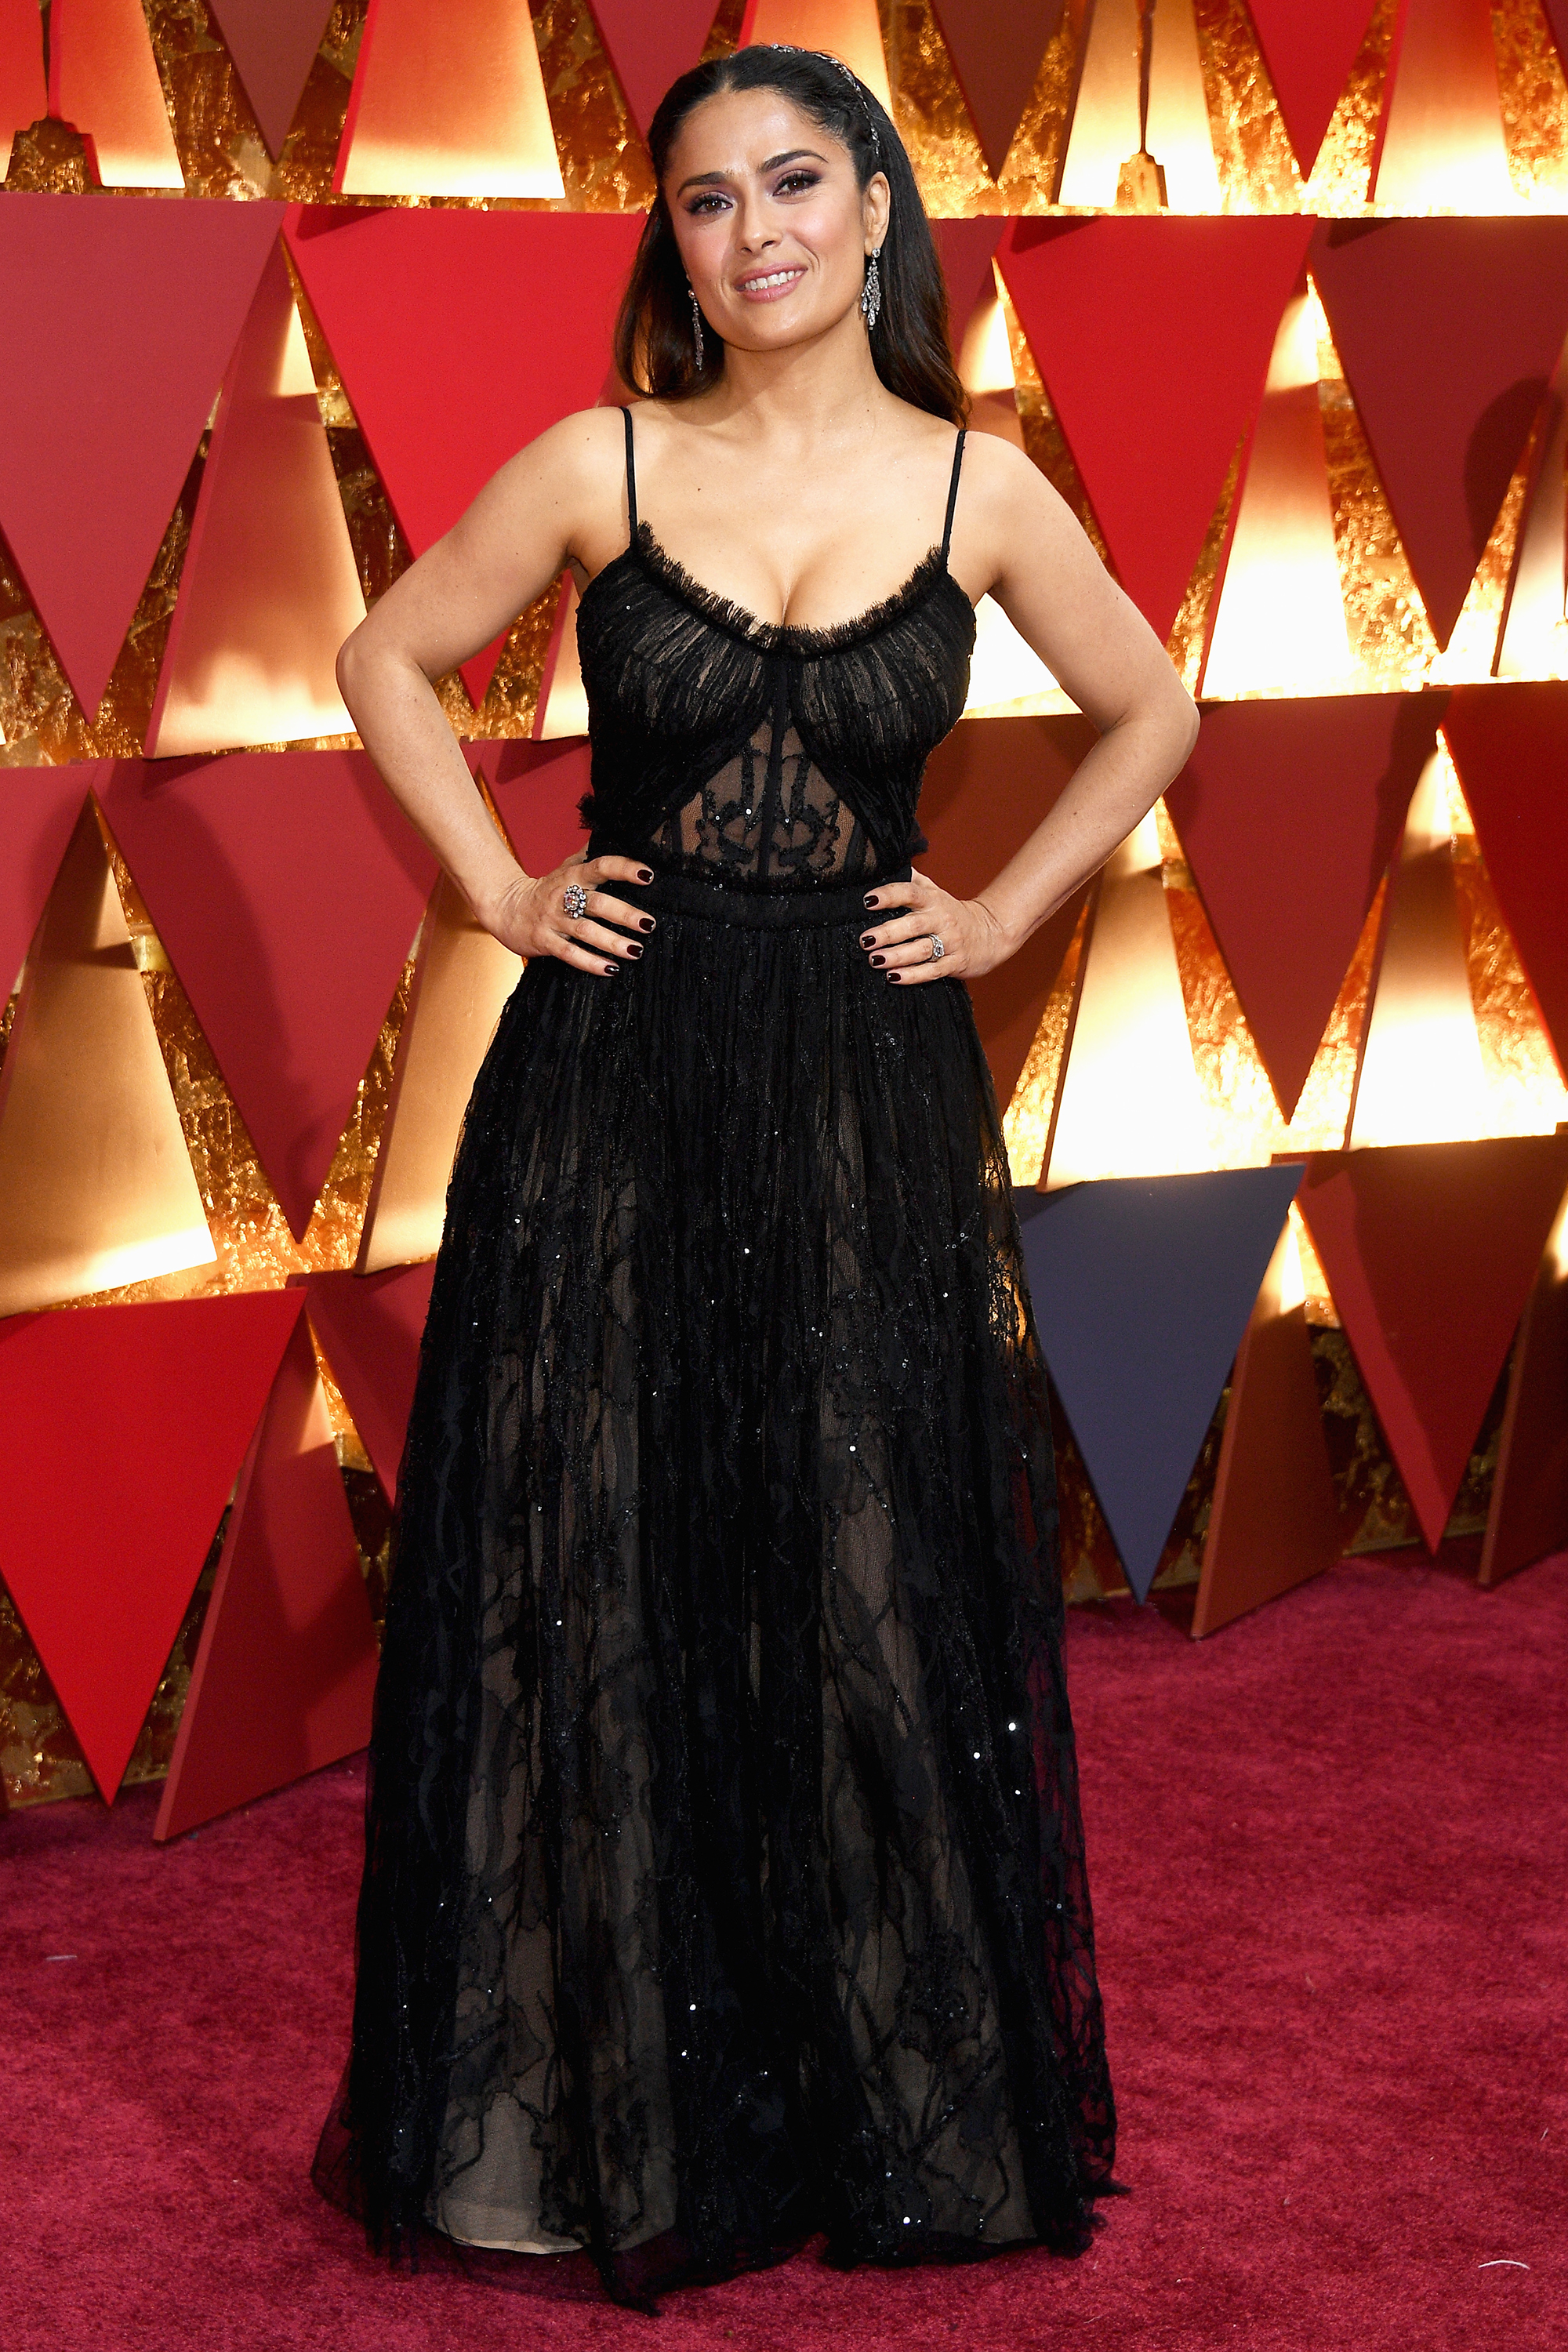 Salma Hayek on the red carpet for the 89th Oscars, on Feb. 26, 2017 in Hollywood, Calif.